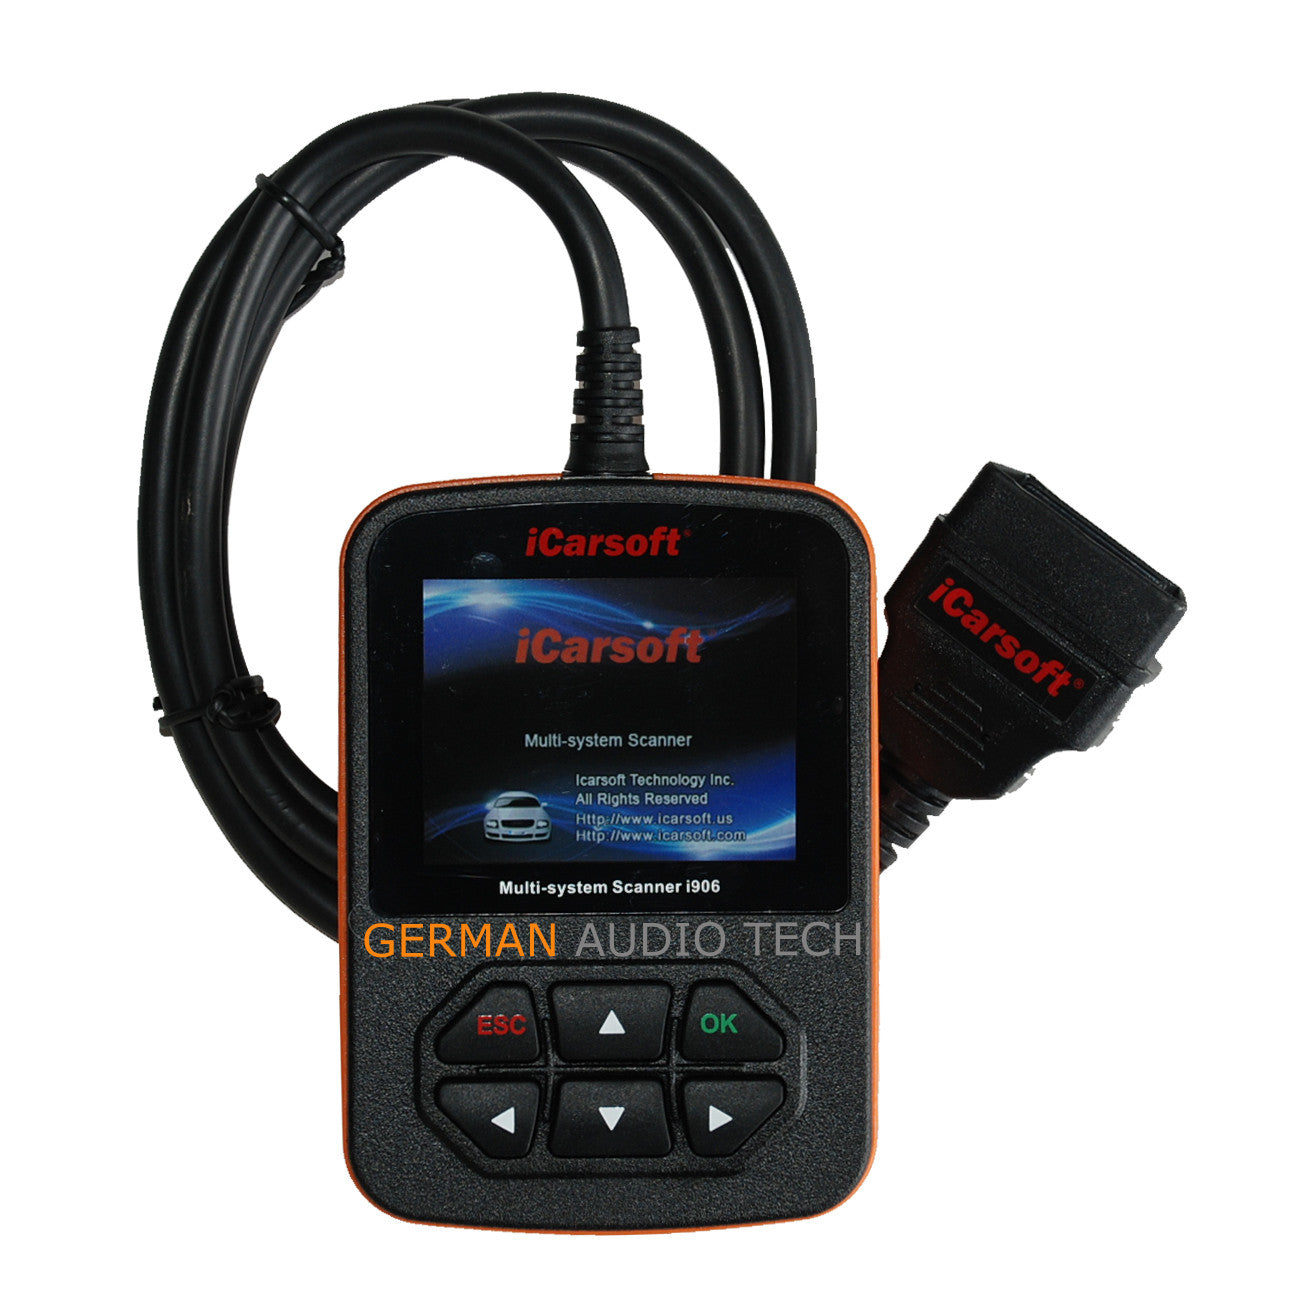 Obd2 Connector Location In Volvo Xc90 2002: ICARSOFT I906 For VOLVO SAAB OBD2 Diagnostic SRS Fault